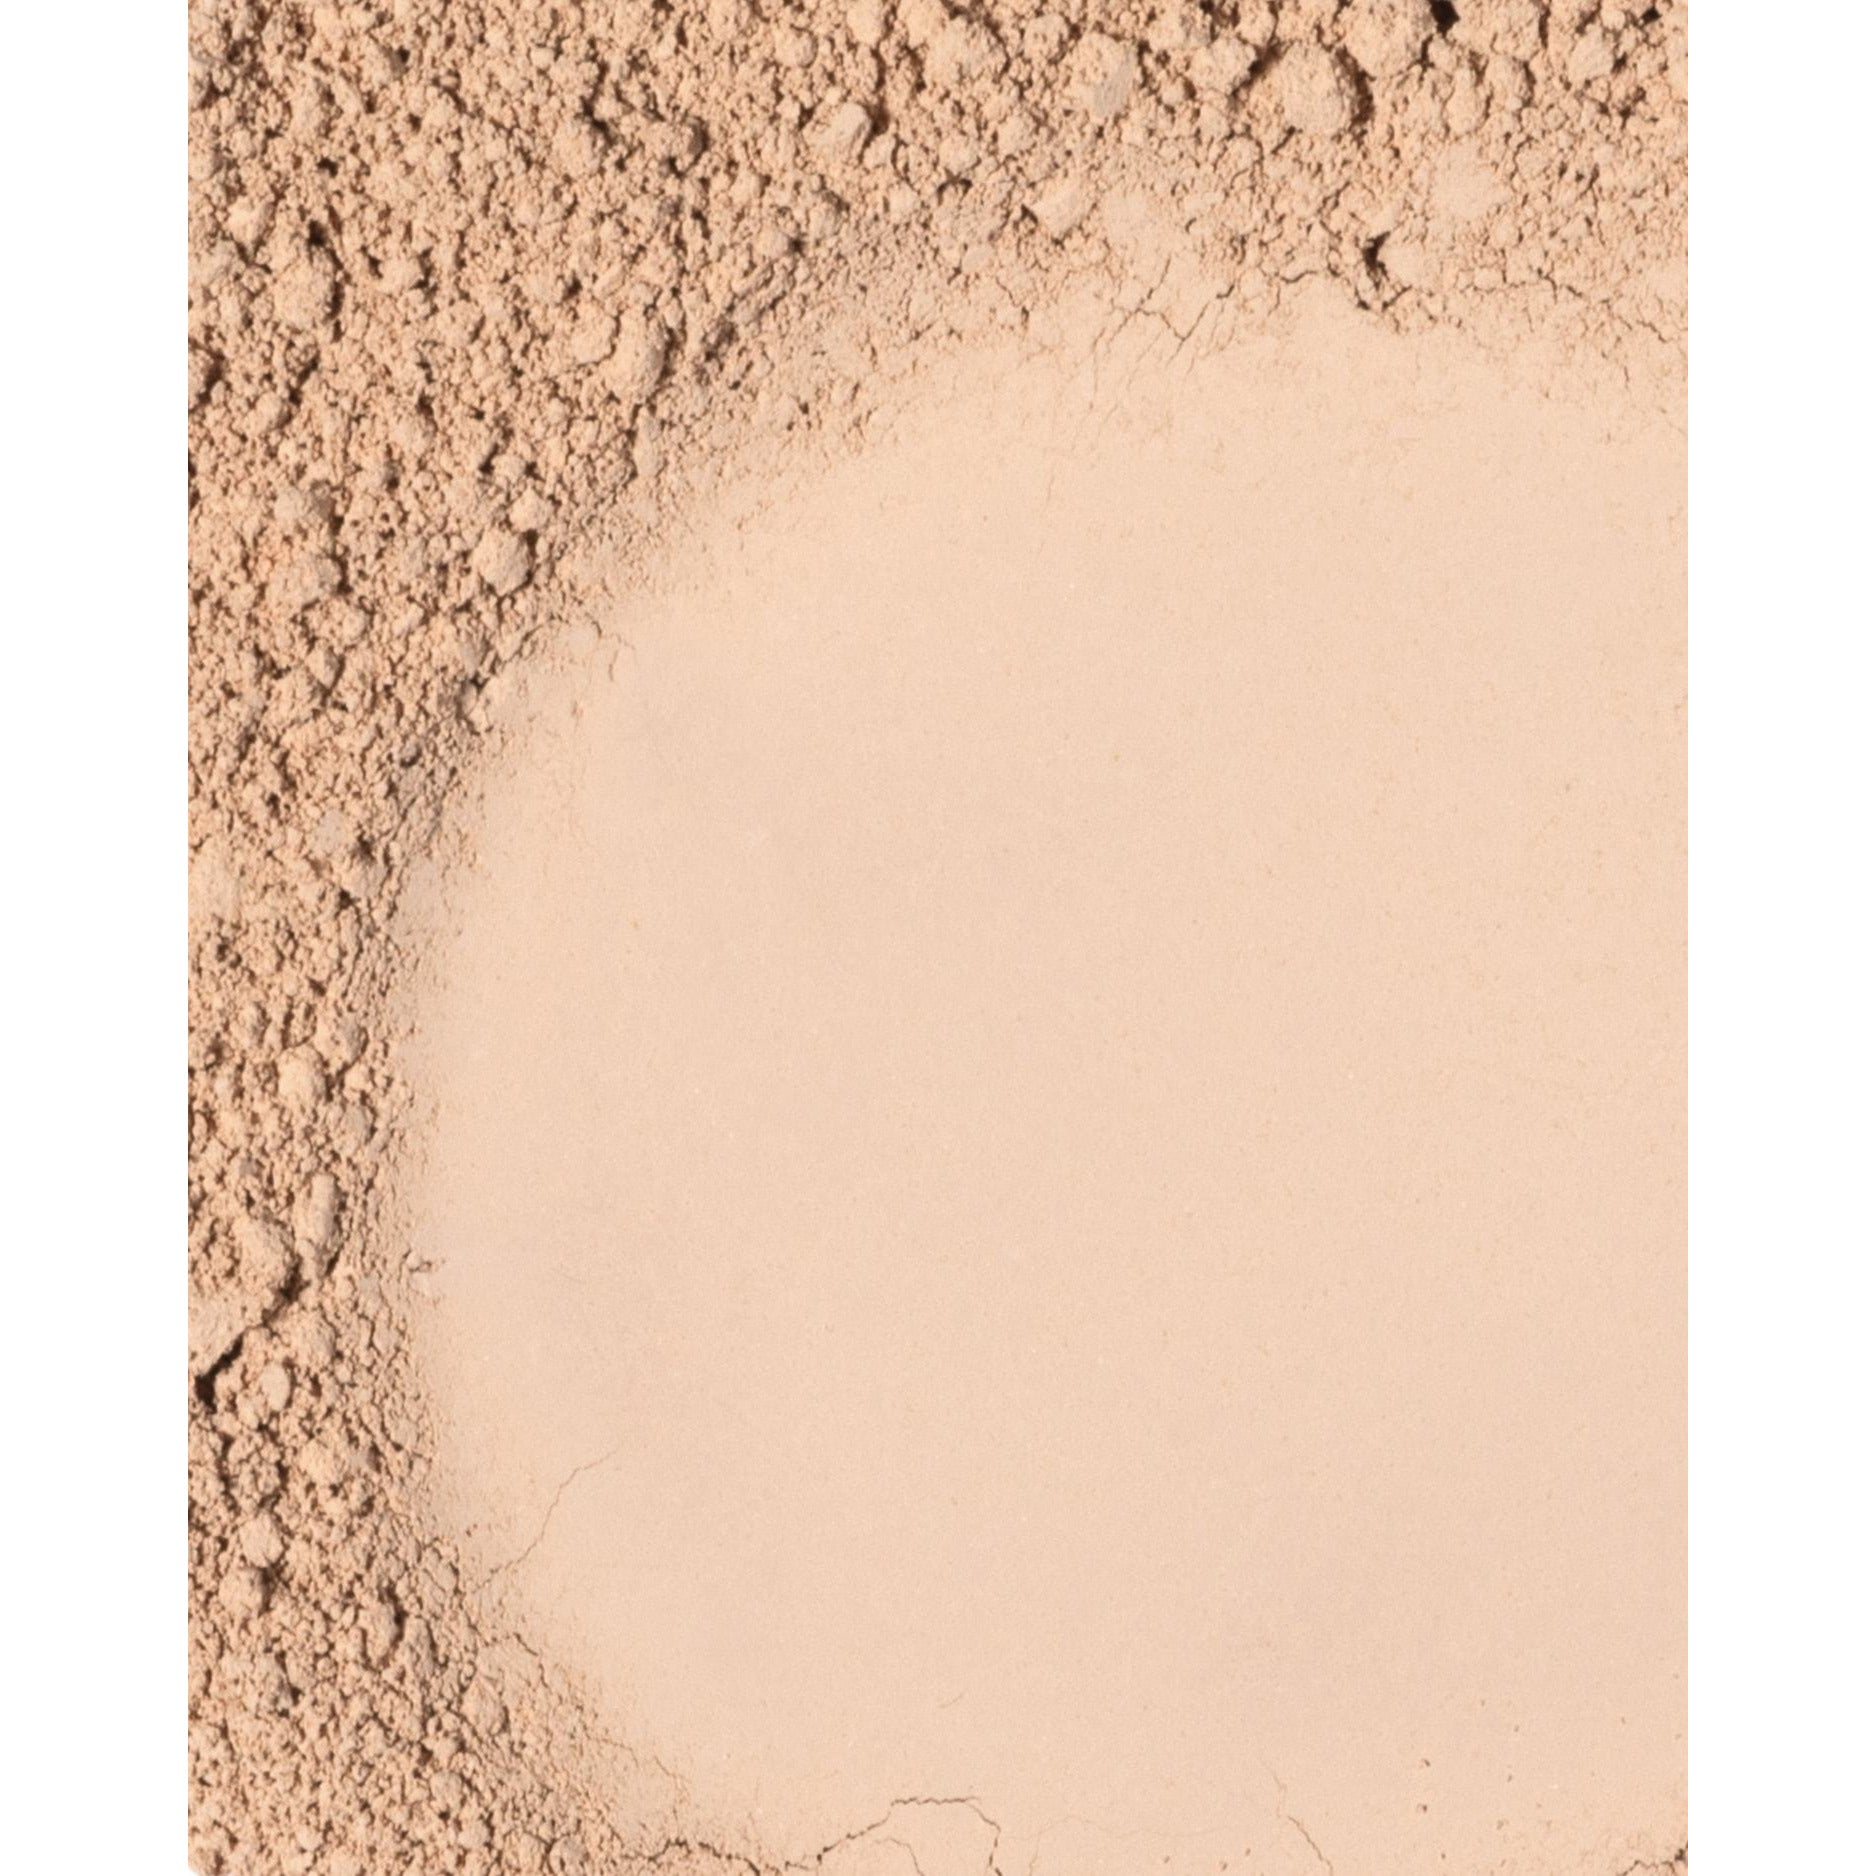 Glam - Omiana Loose Powder Mineral Foundation No Titanium Dioxide and No Mica